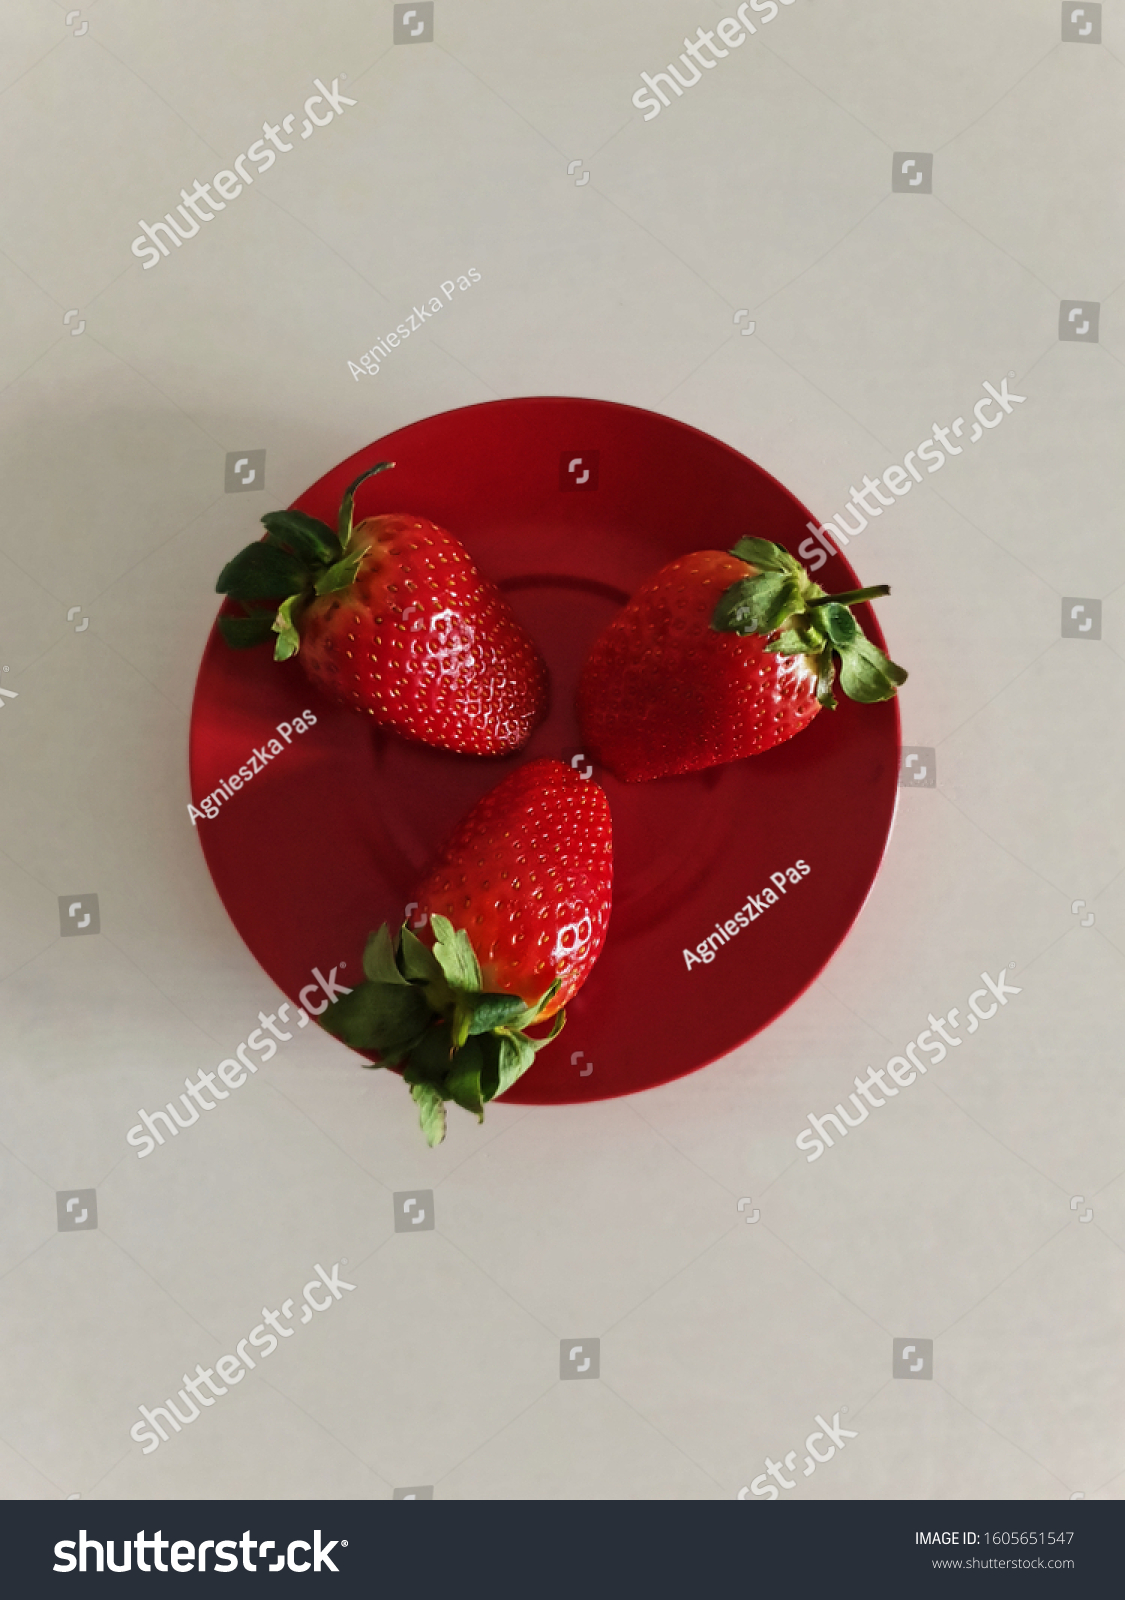 stock-photo-three-strawberries-on-red-pl